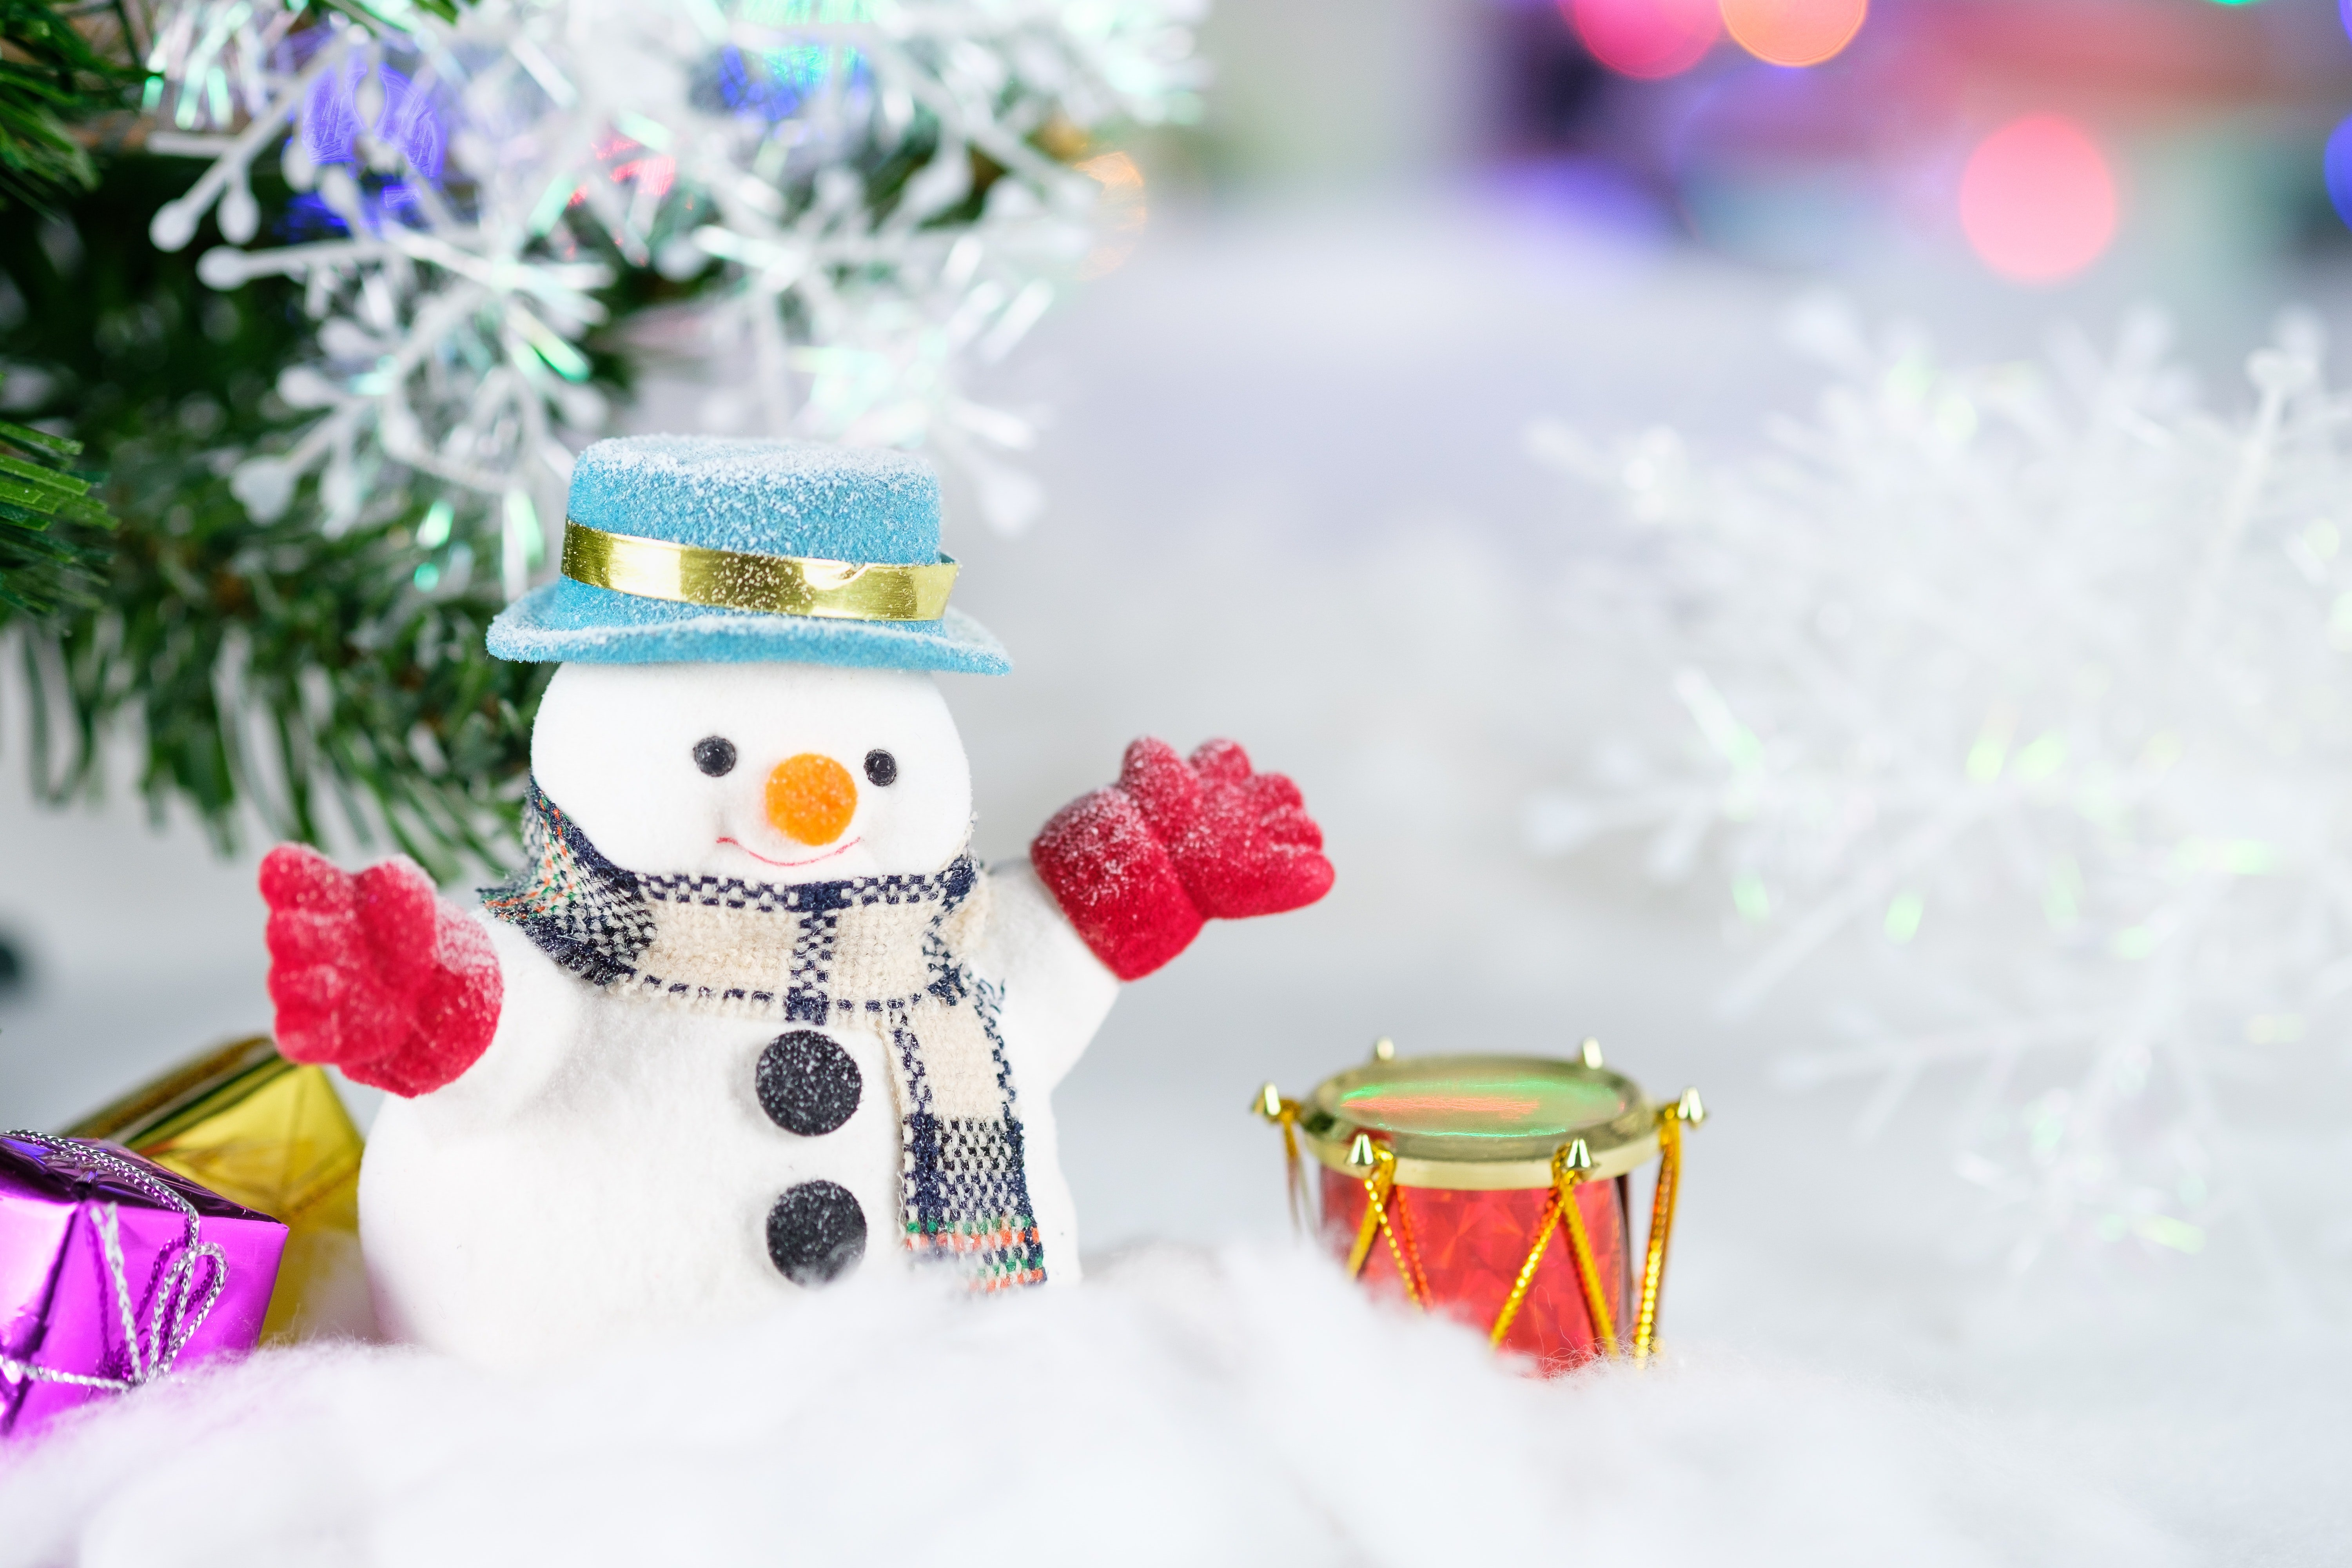 Snowman and drums | Photo: Pexels.com